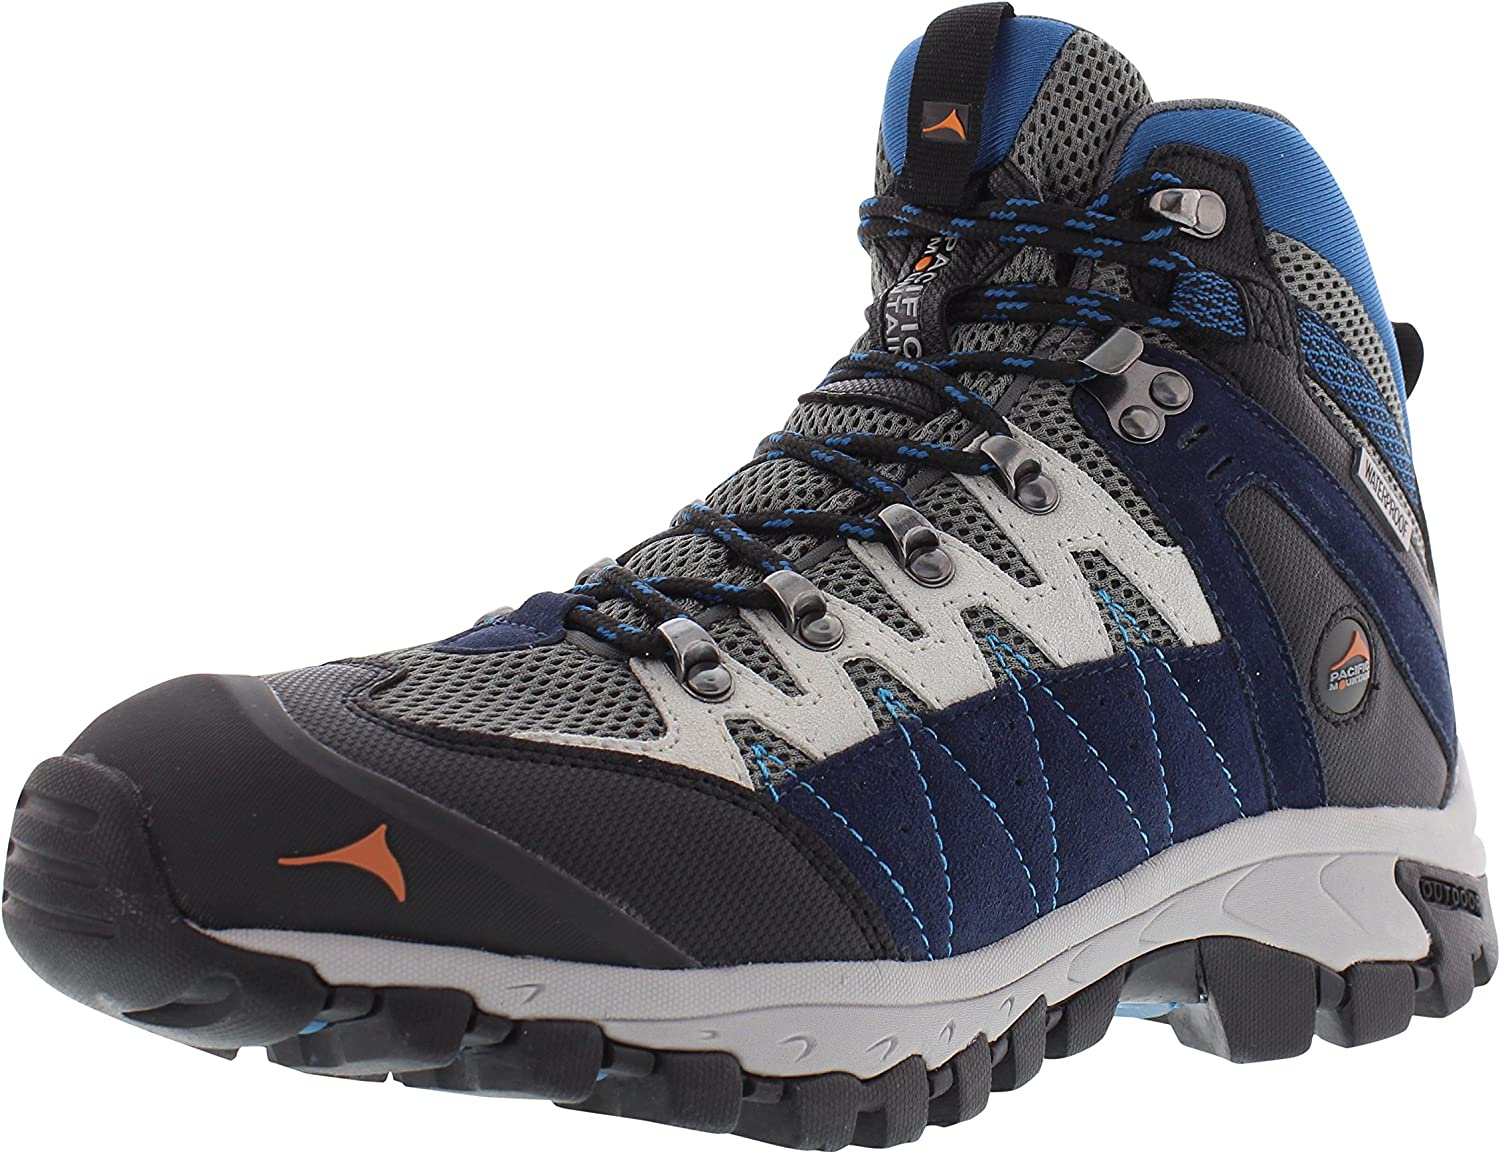 99e1b44ea86 Pacific Mountain Descend Men's Waterproof Hiking Backpacking Mid ...